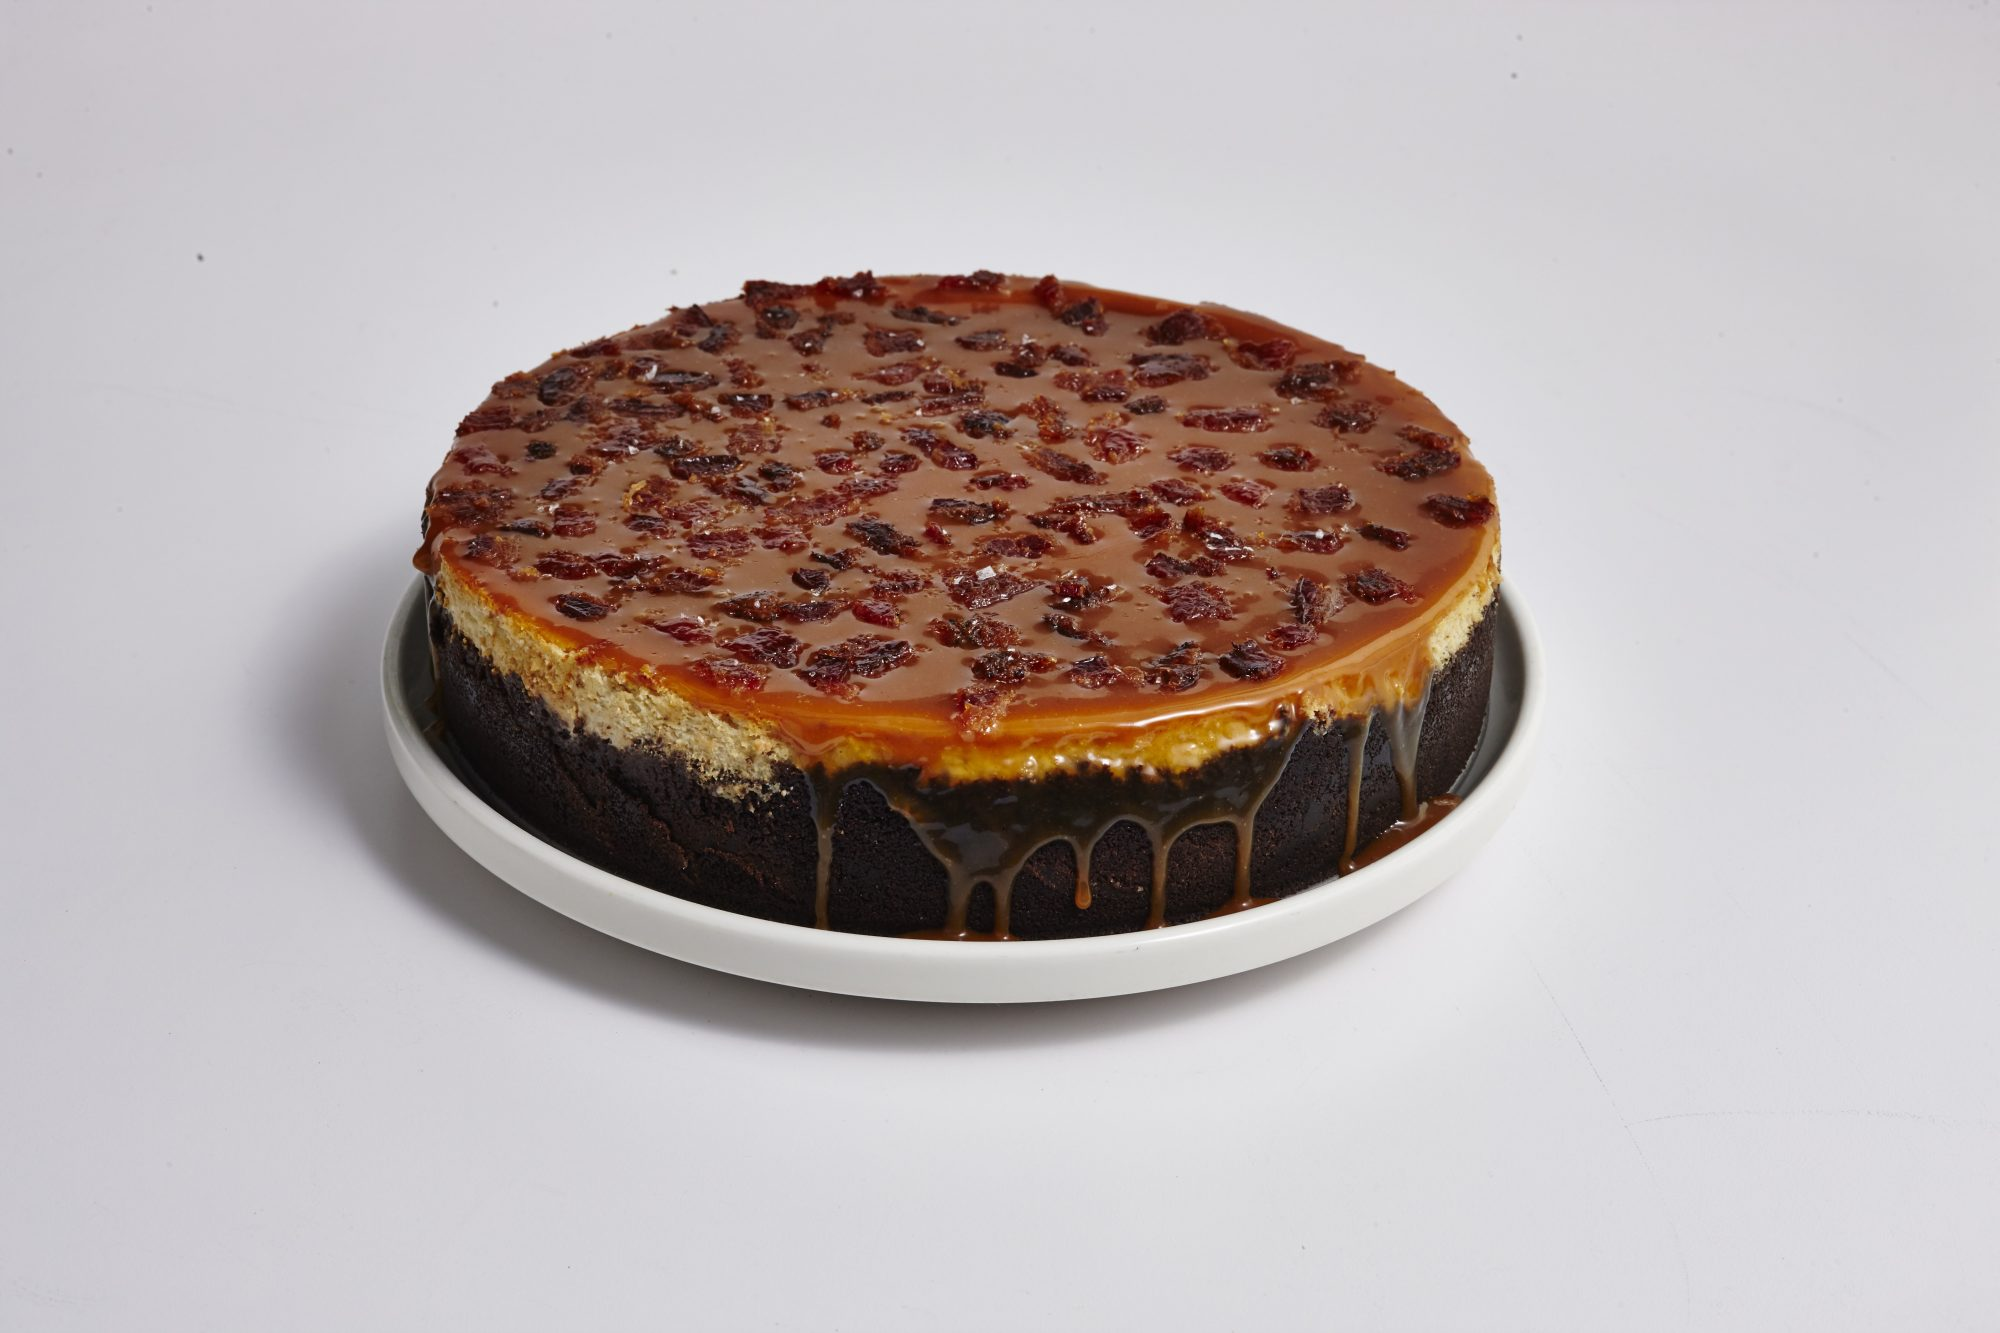 mr-Peanut Butter and Banana Cheesecake with Candied Bacon Image